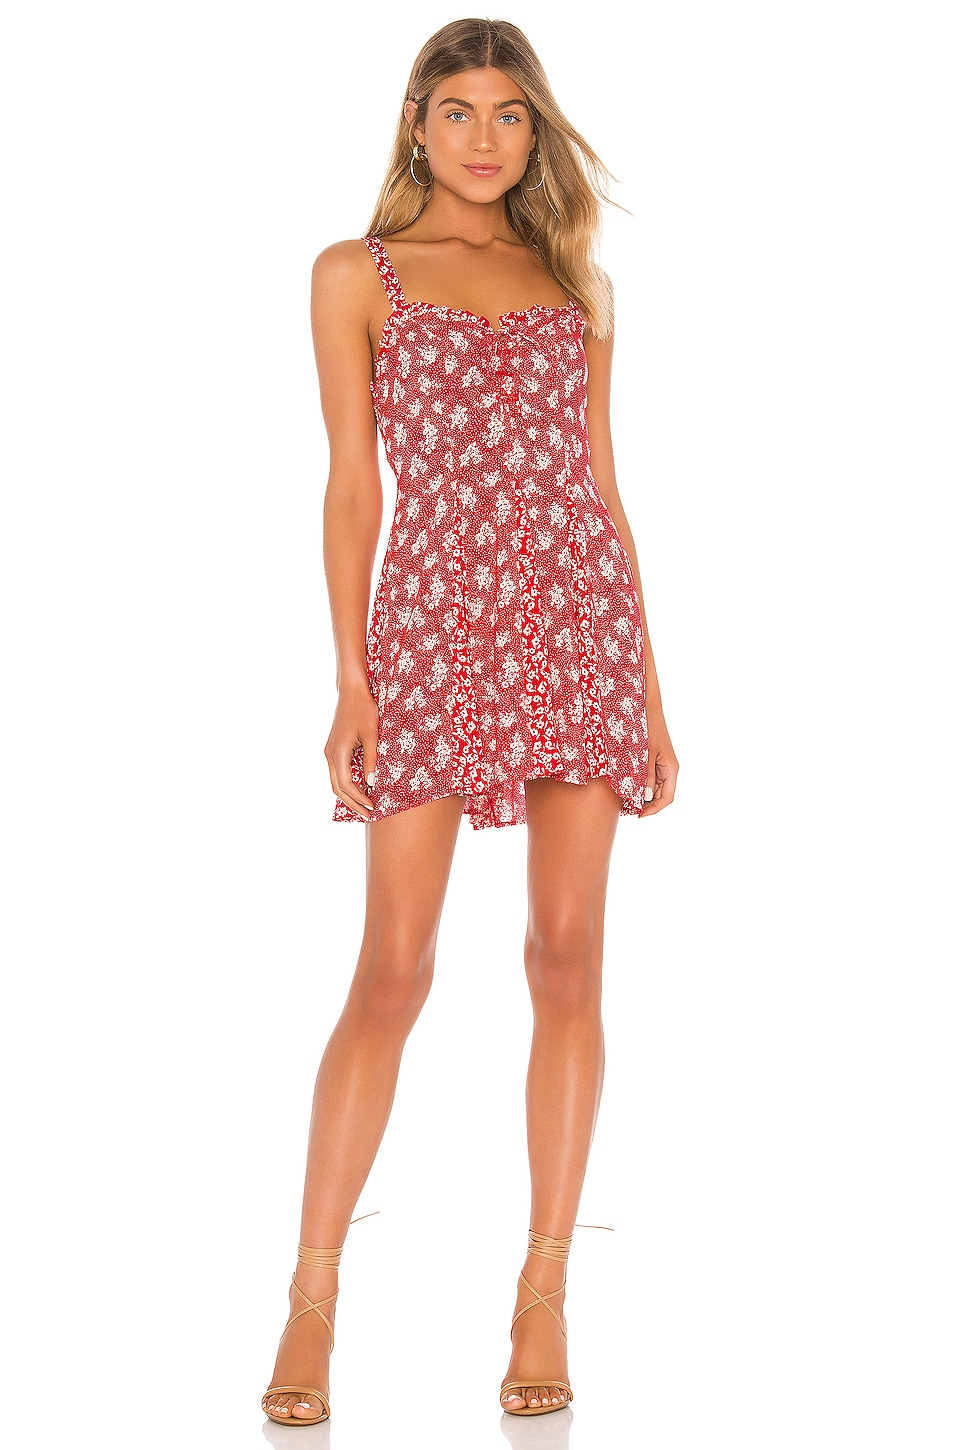 Free People Don't Dare Mixed Print Mini Dress in Red Combo